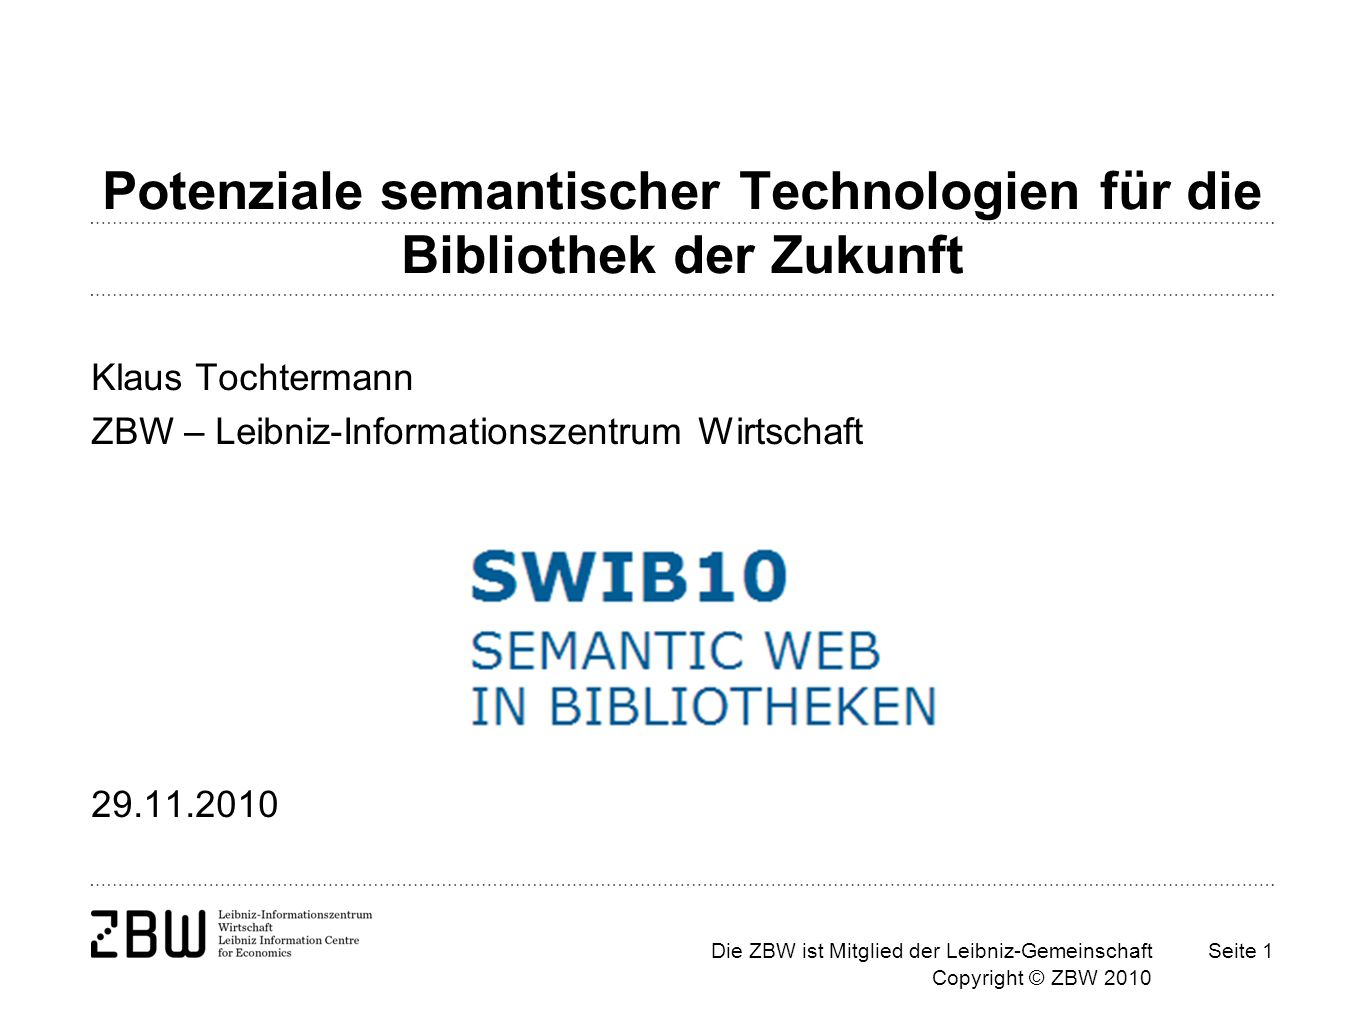 Die ZBW ist Mitglied der Leibniz-Gemeinschaft Copyright © ZBW 2010 Seite 22 Analysis Monitor user activities Deduce users preferences and knowledge from user behavior Adjust content to user profiles Deliver personalized content …